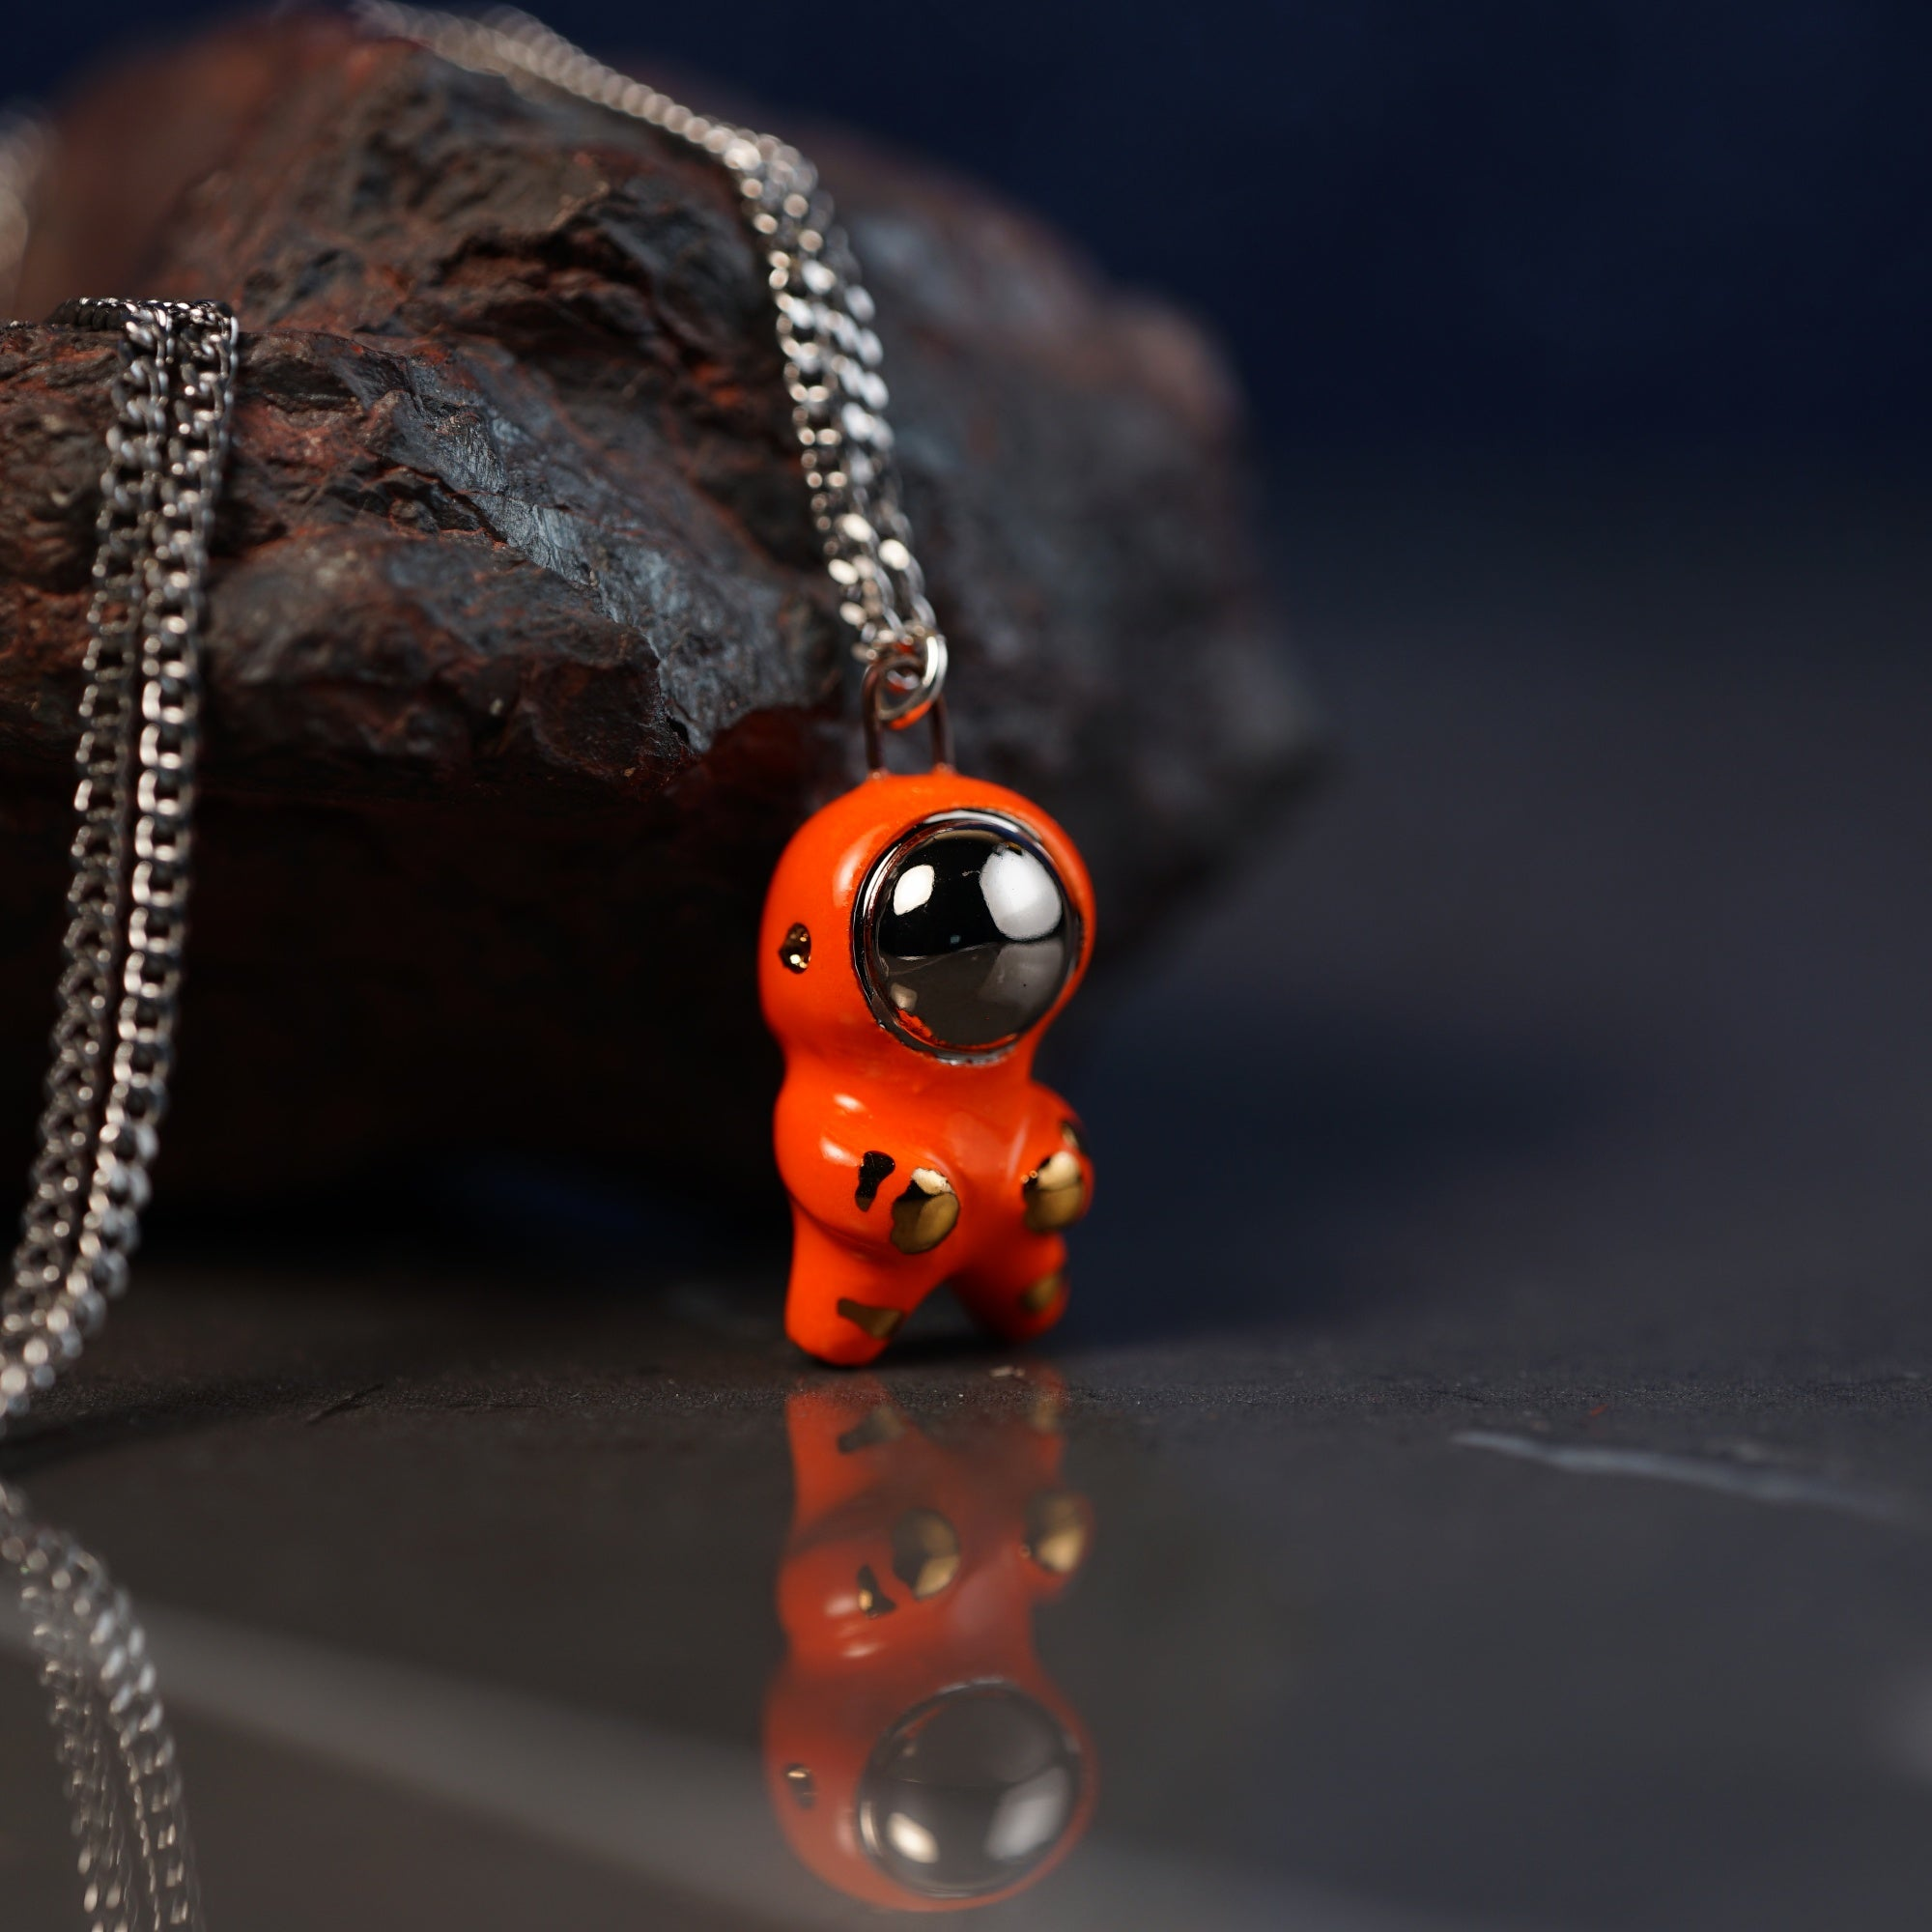 Little Astronaut Necklace